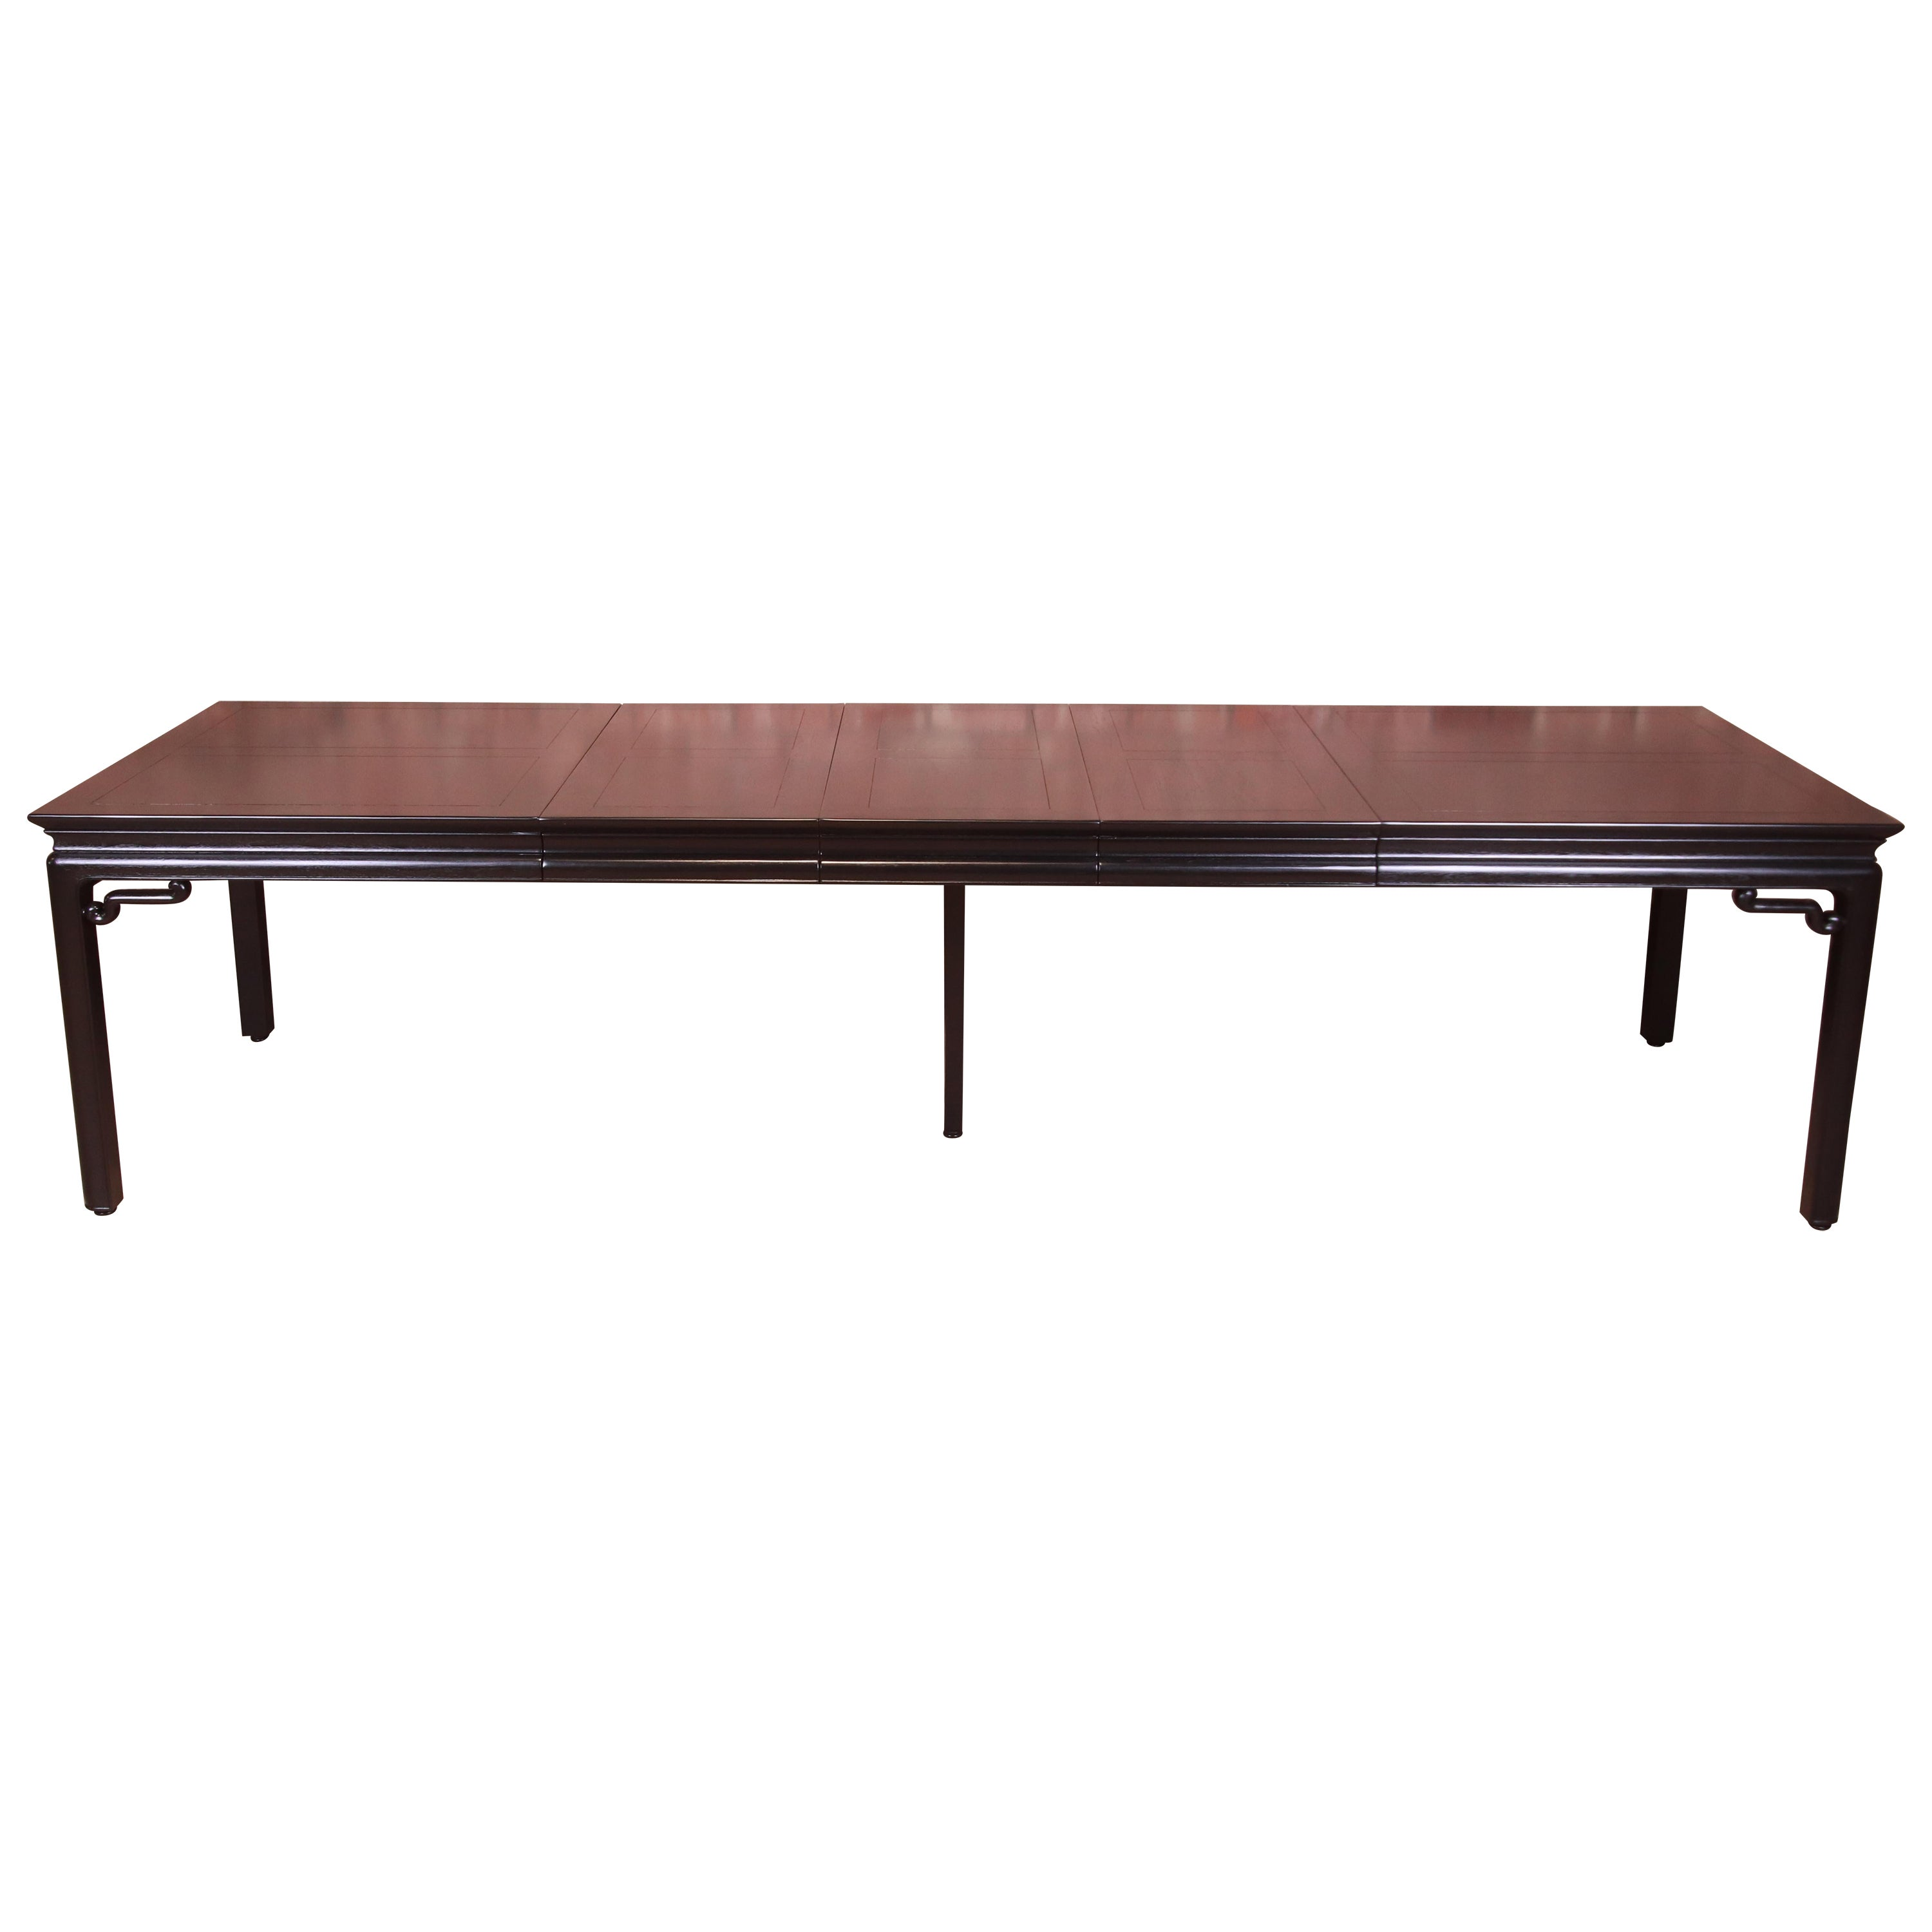 Michael Taylor for Baker Far East Black Lacquered Dining Table, Newly Refinished